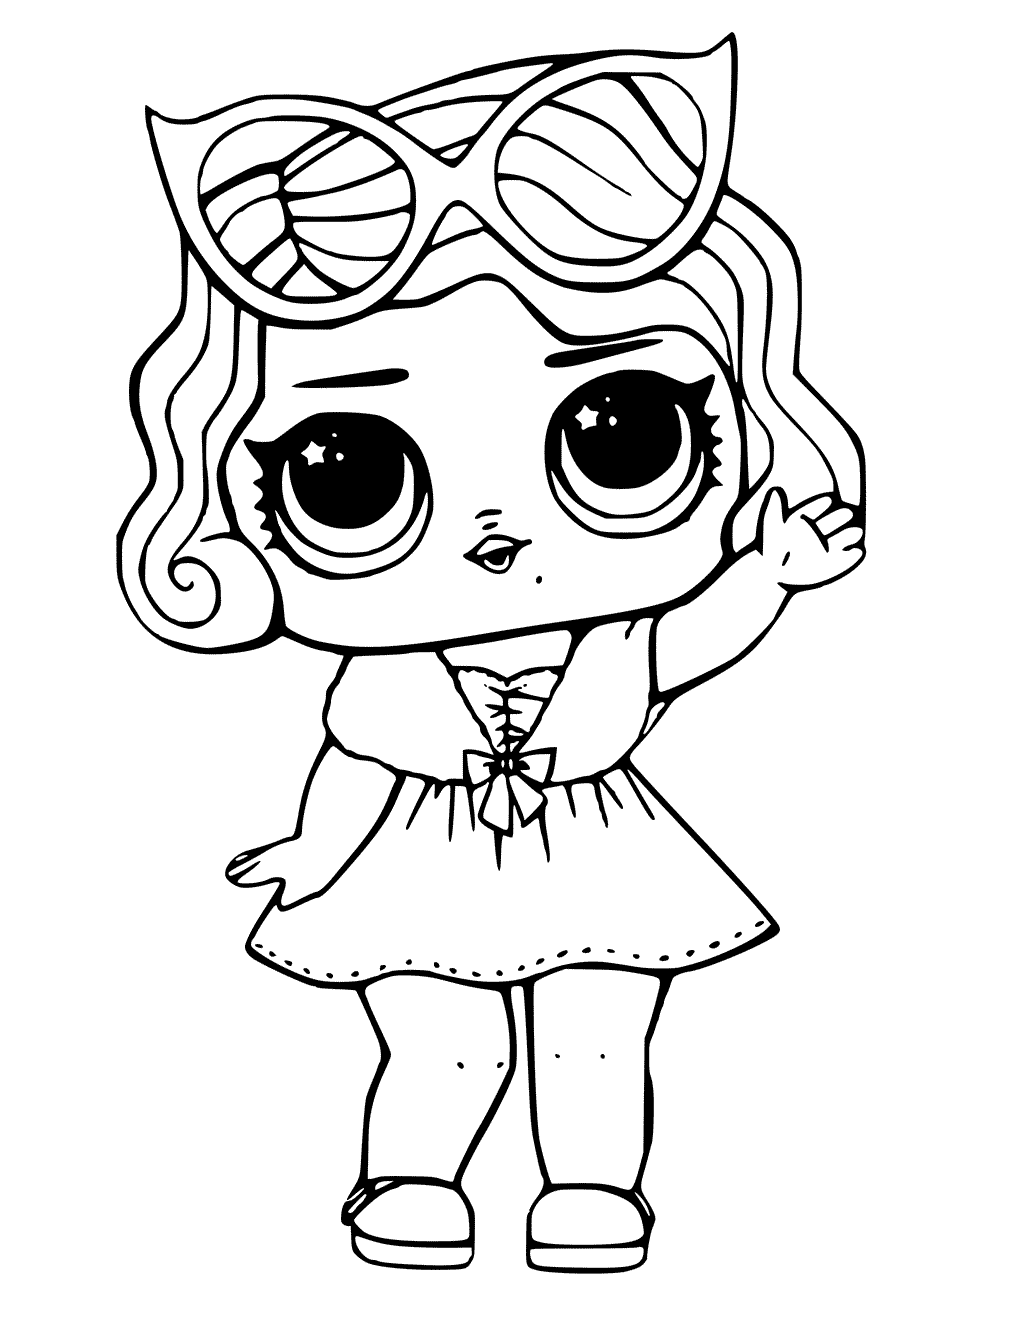 Leading Baby Lol Dolls Coloring Pages Baby Coloring Pages Unicorn Coloring Pages Cute Coloring Pages